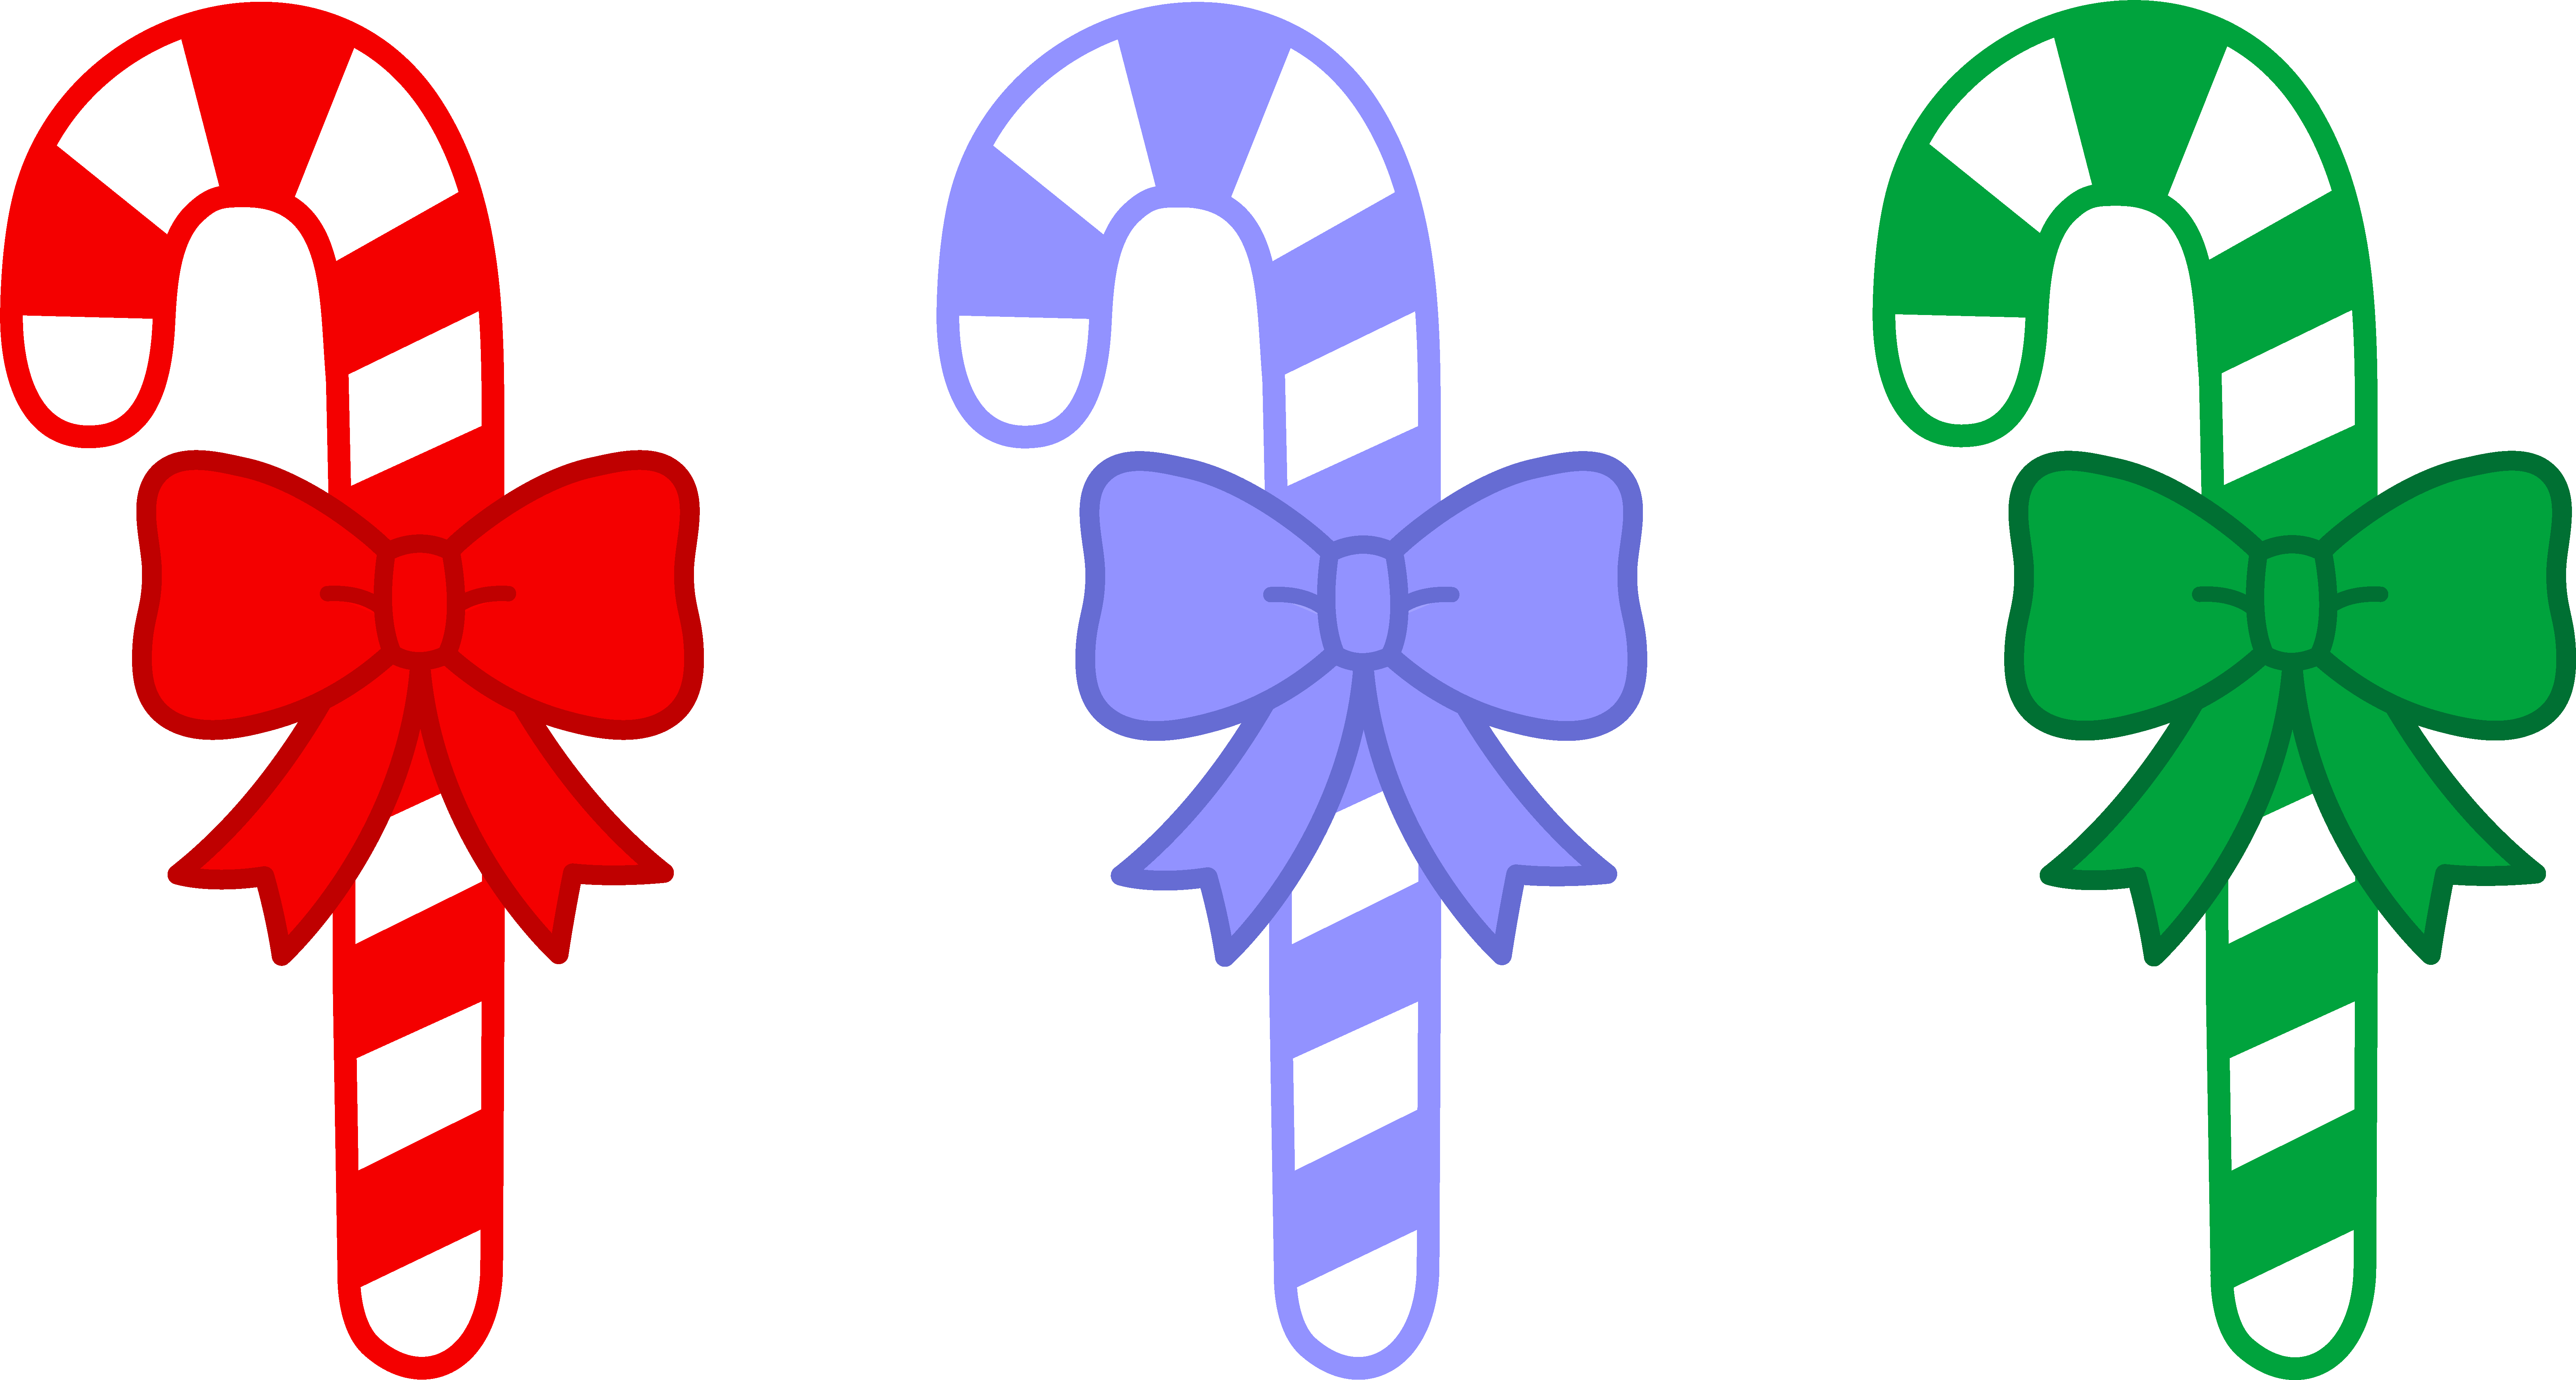 Sweet clipart border. Three candy canes with